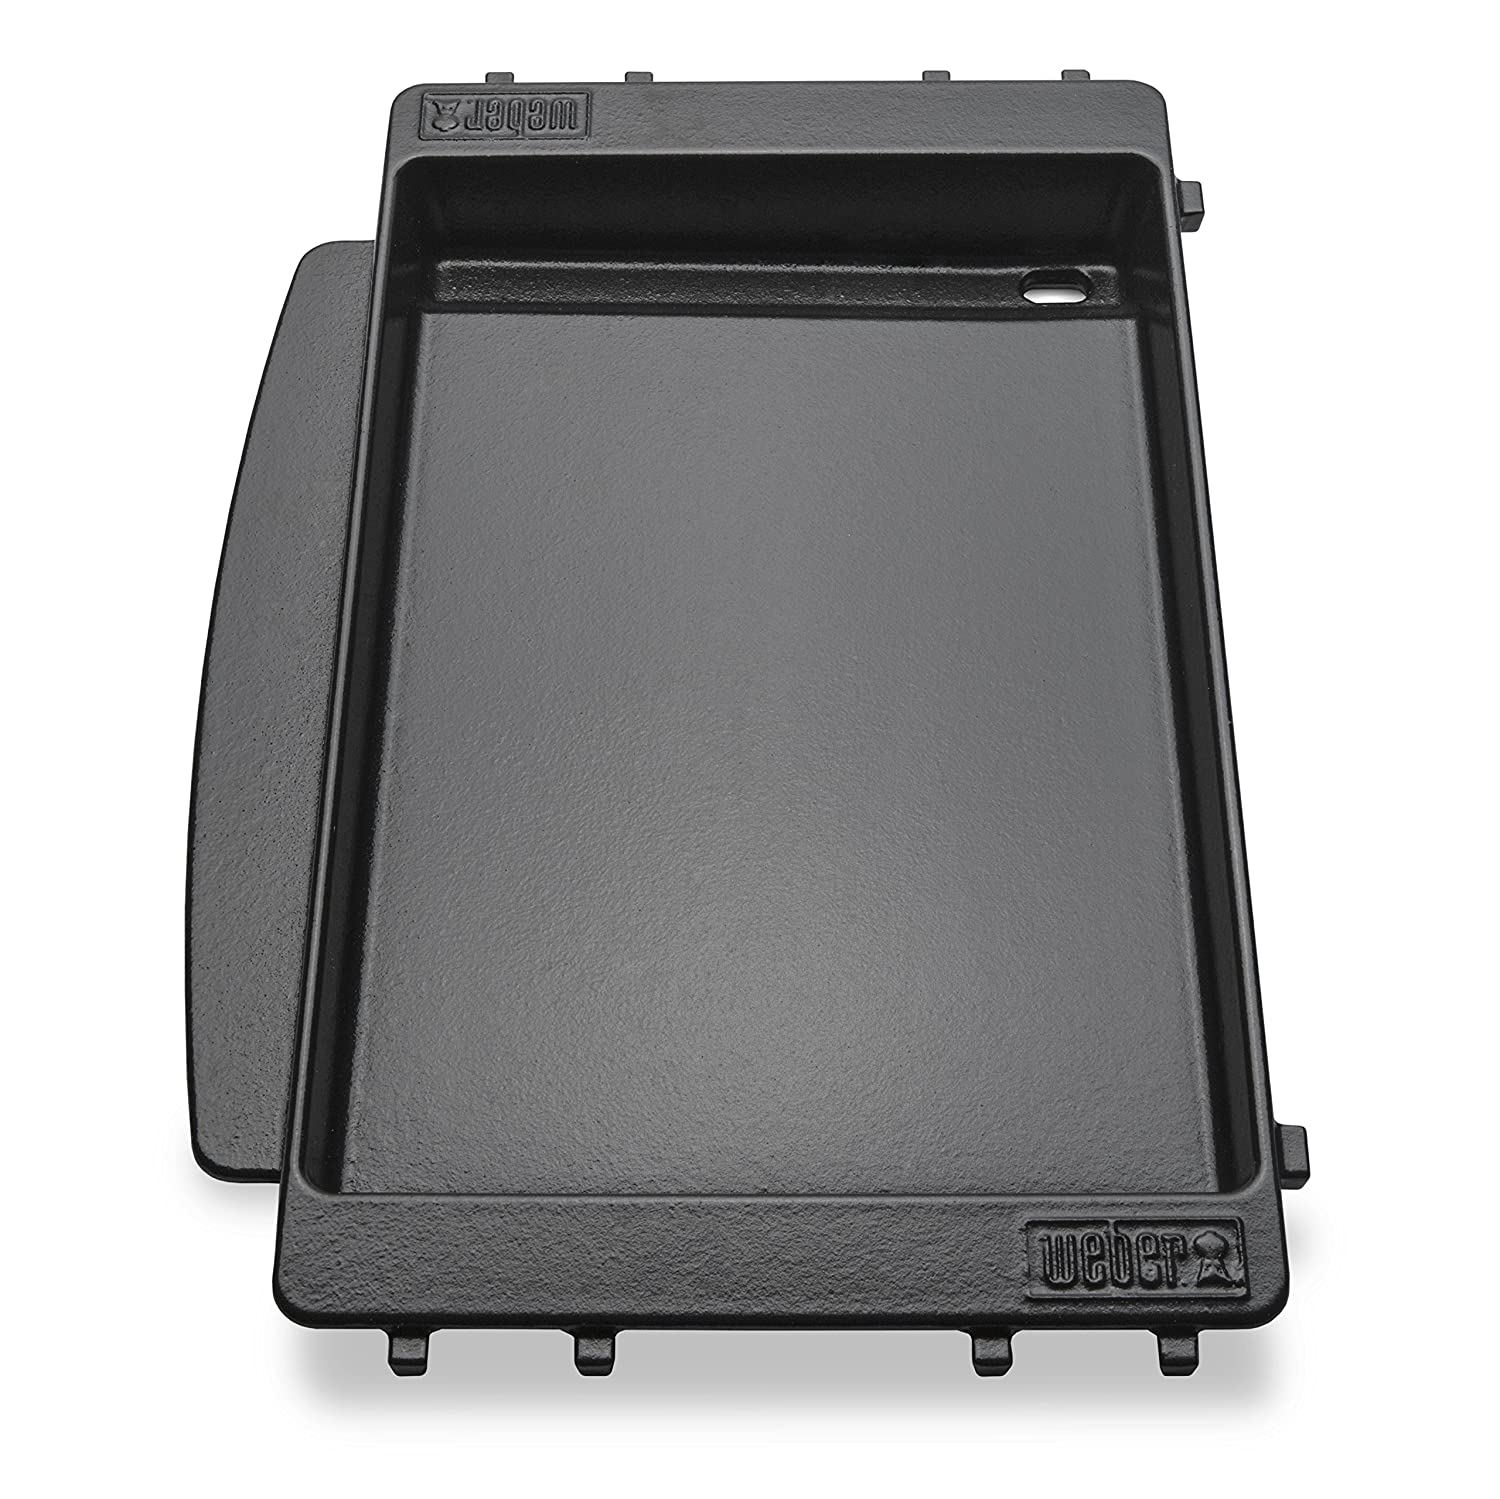 Weber 7658 Grill Griddle, Black